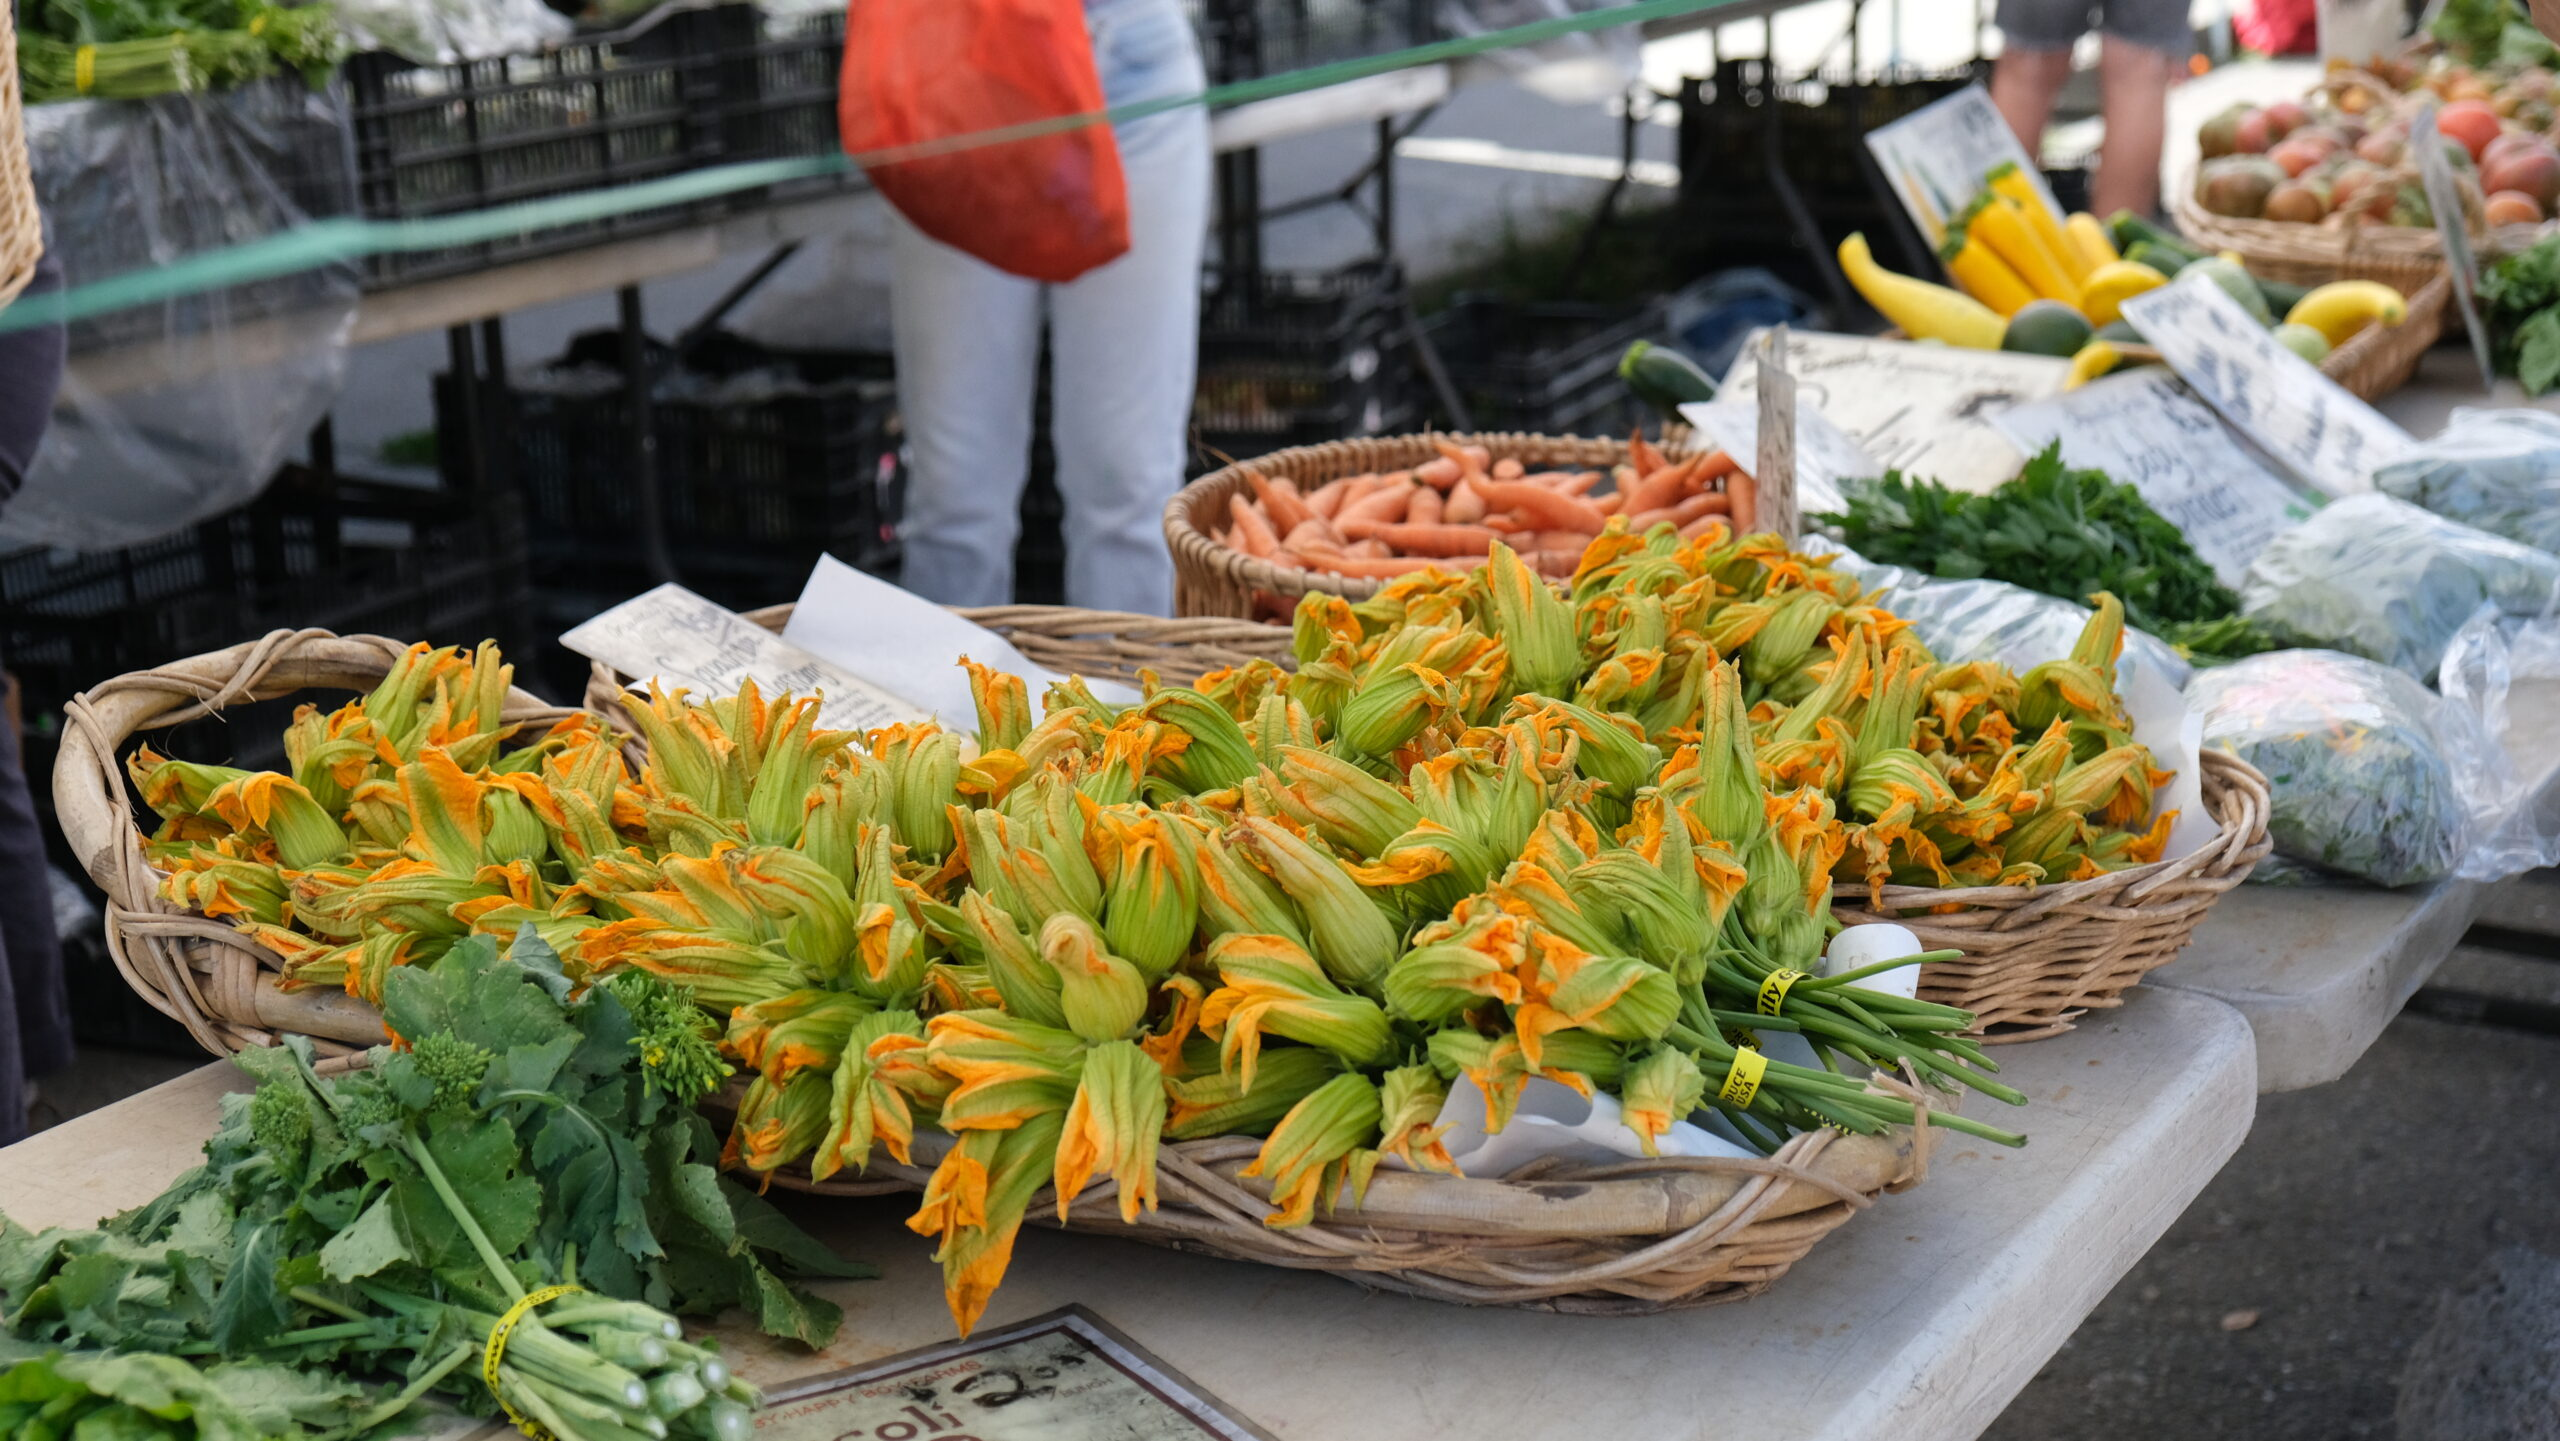 Flower Power: Squash Blossom Is A Sensory Experience